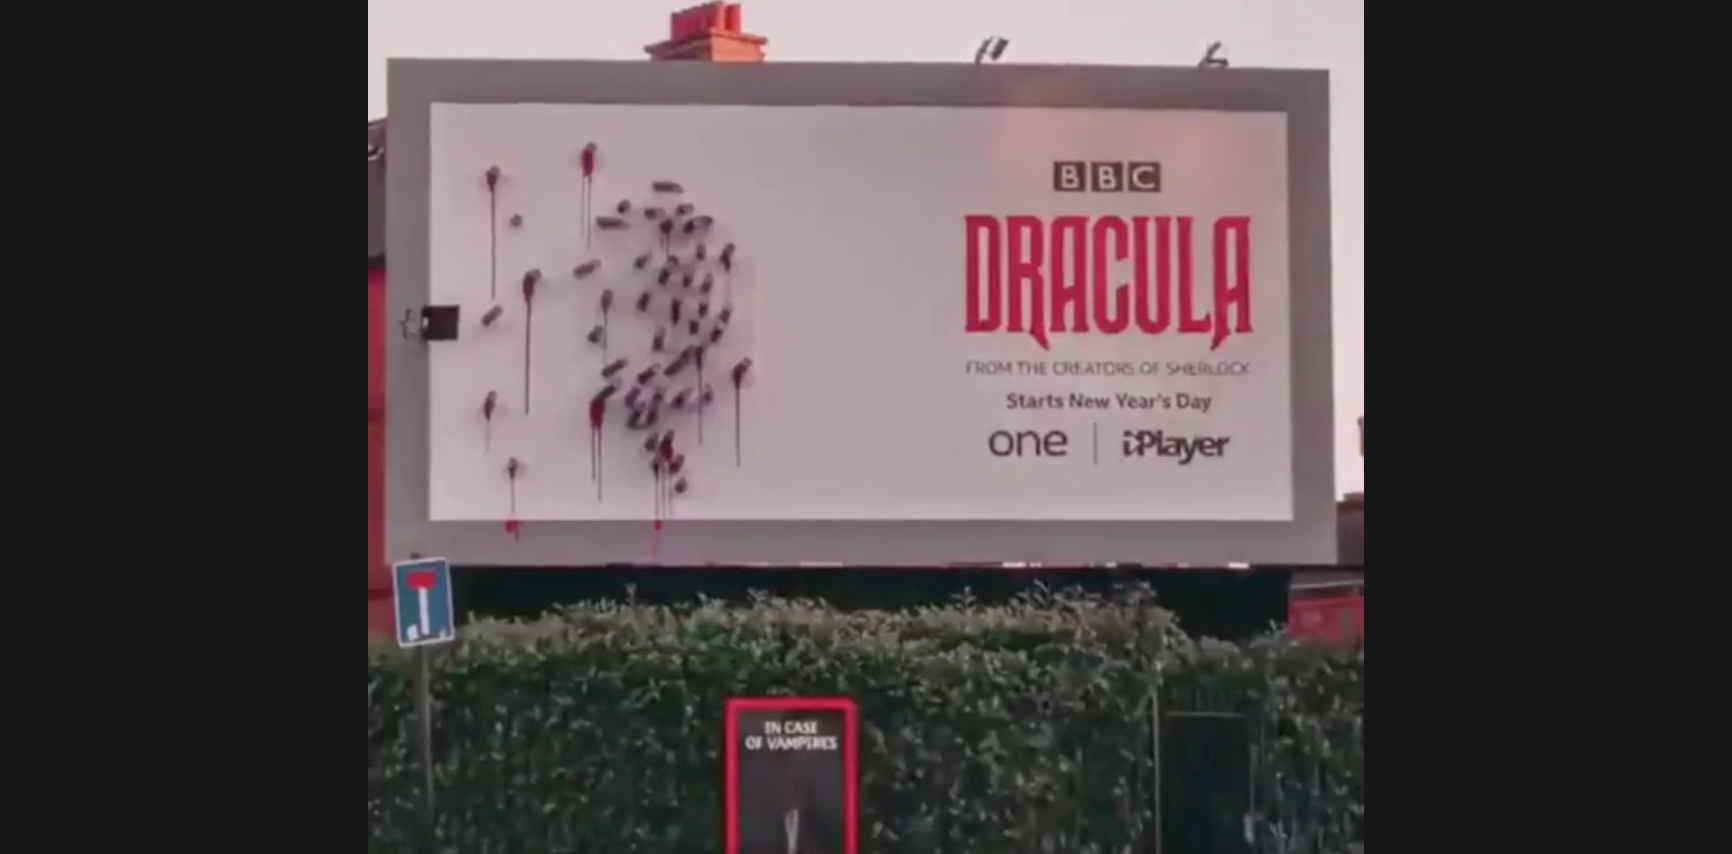 Timelapse Reveals How Clever This Billboard Ad For The BBC's 'Dracula' Is